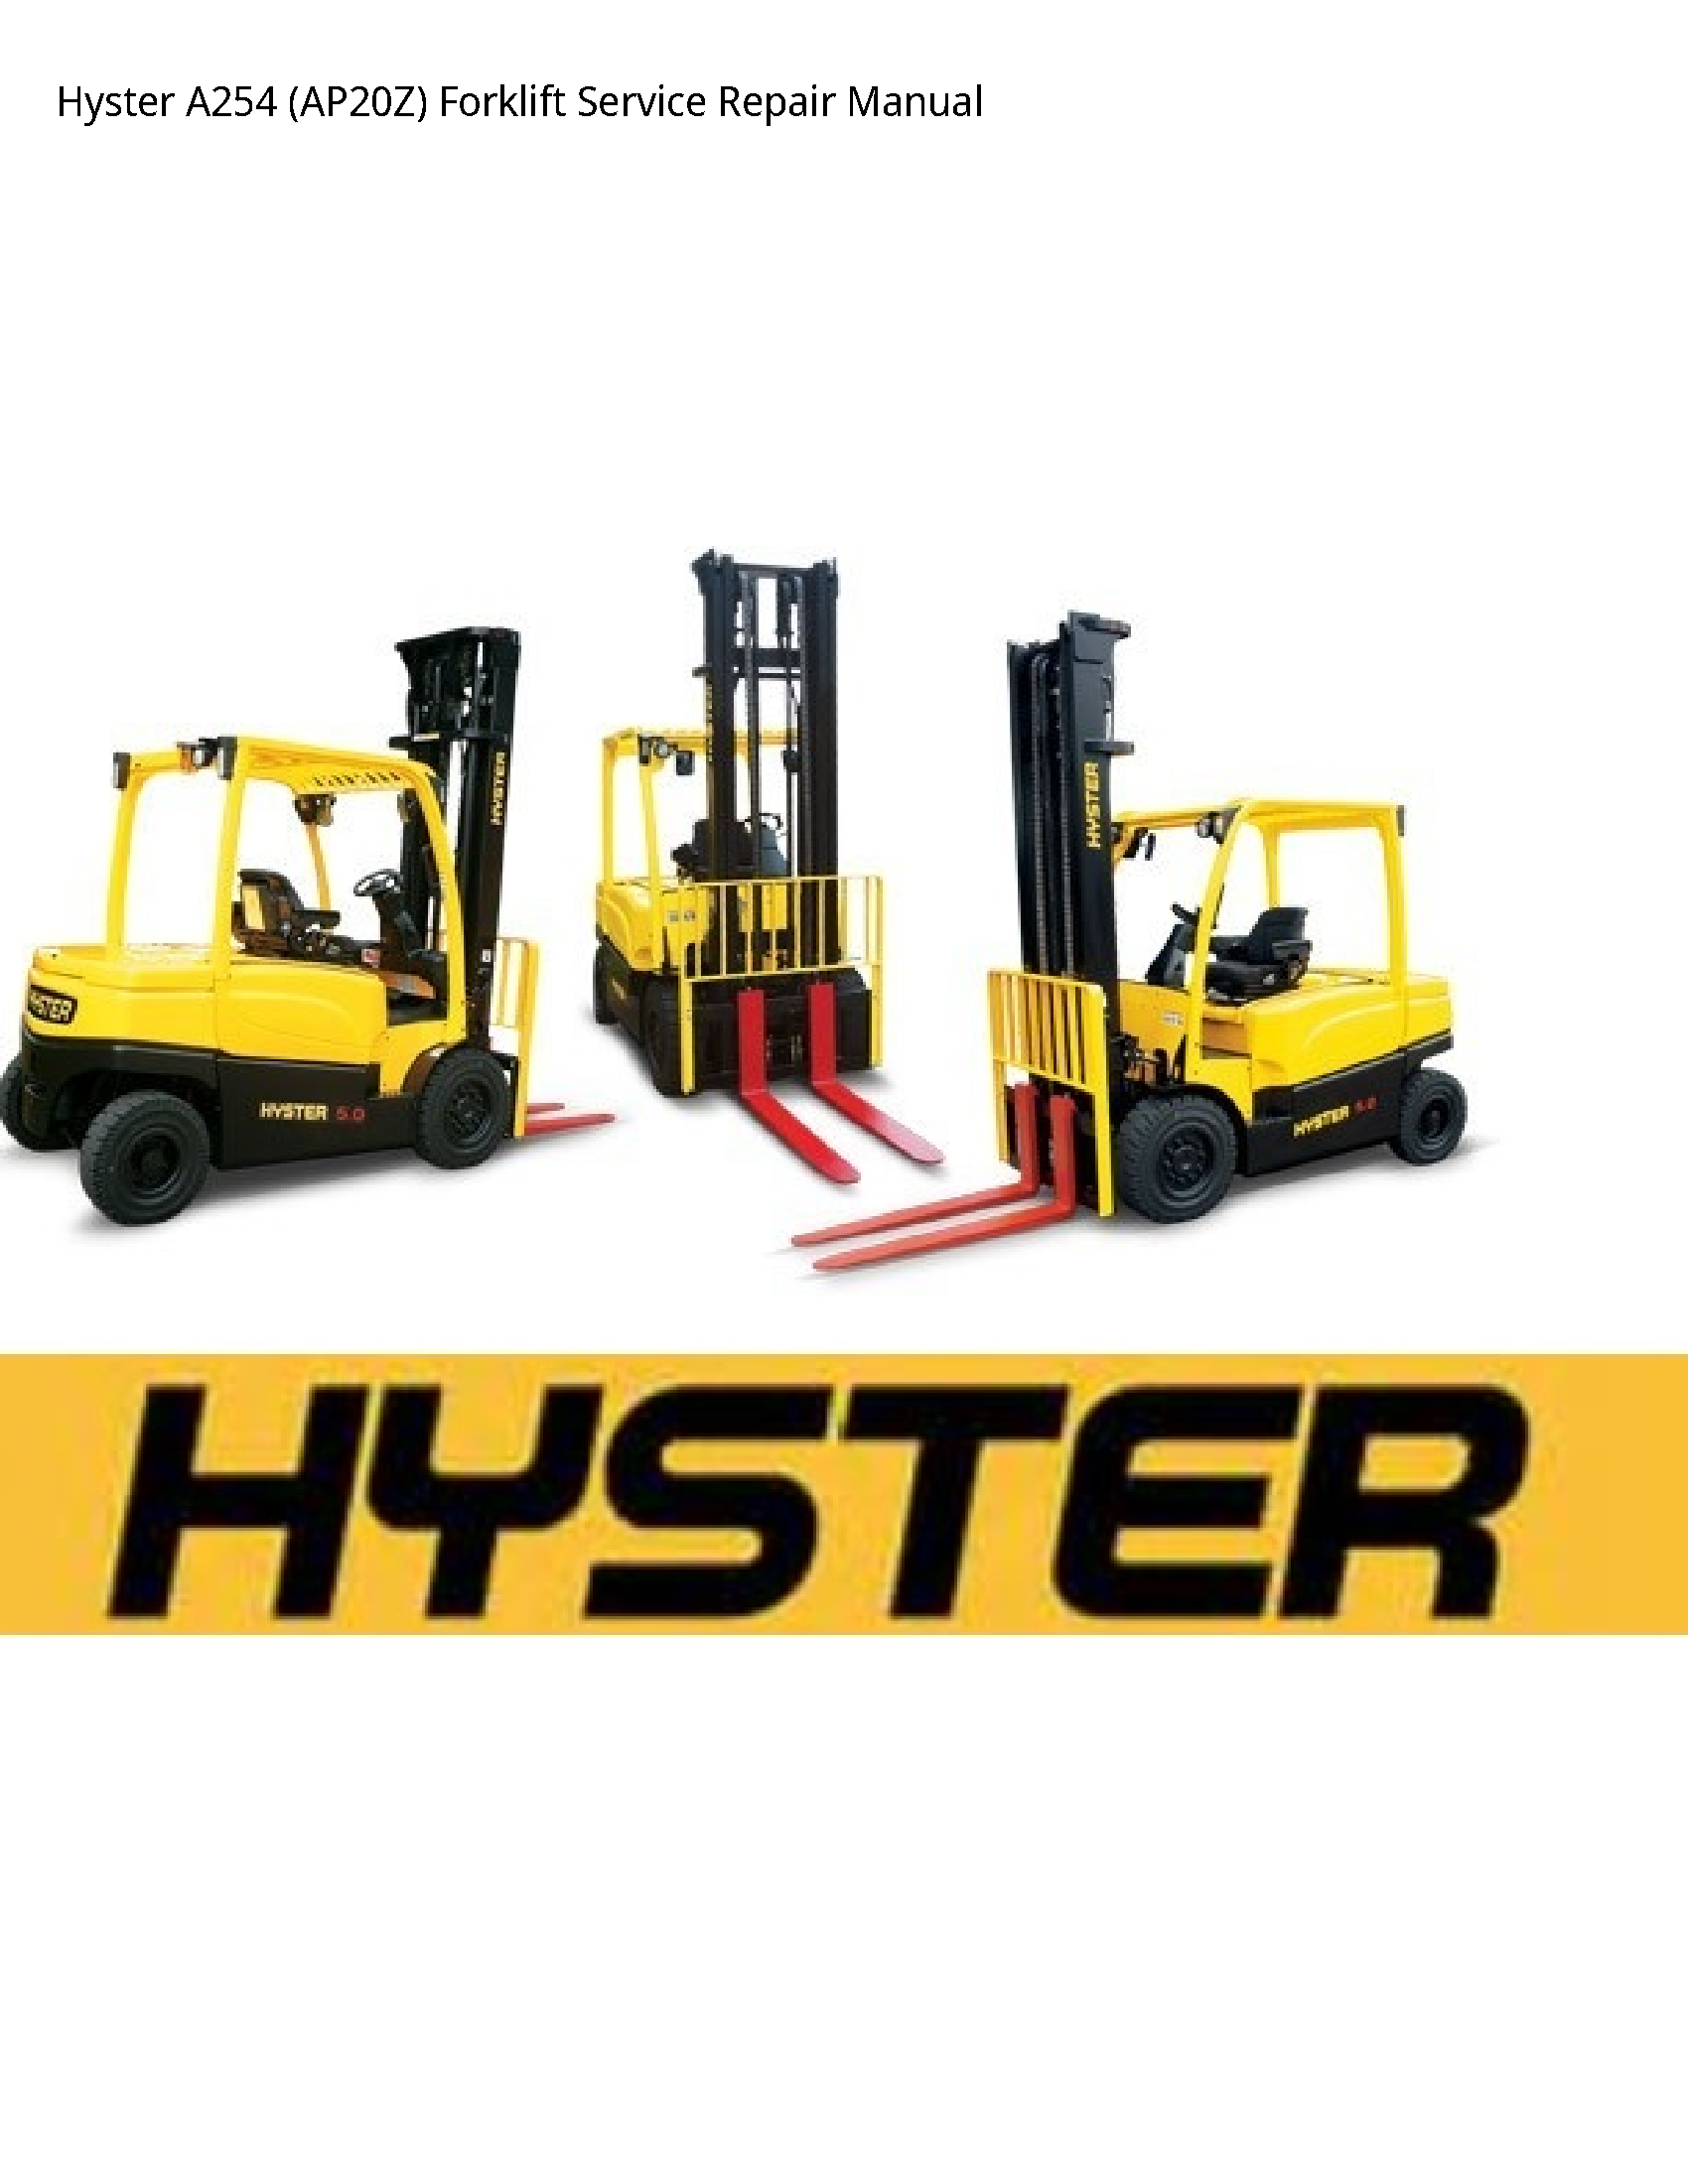 Hyster A254 Forklift manual